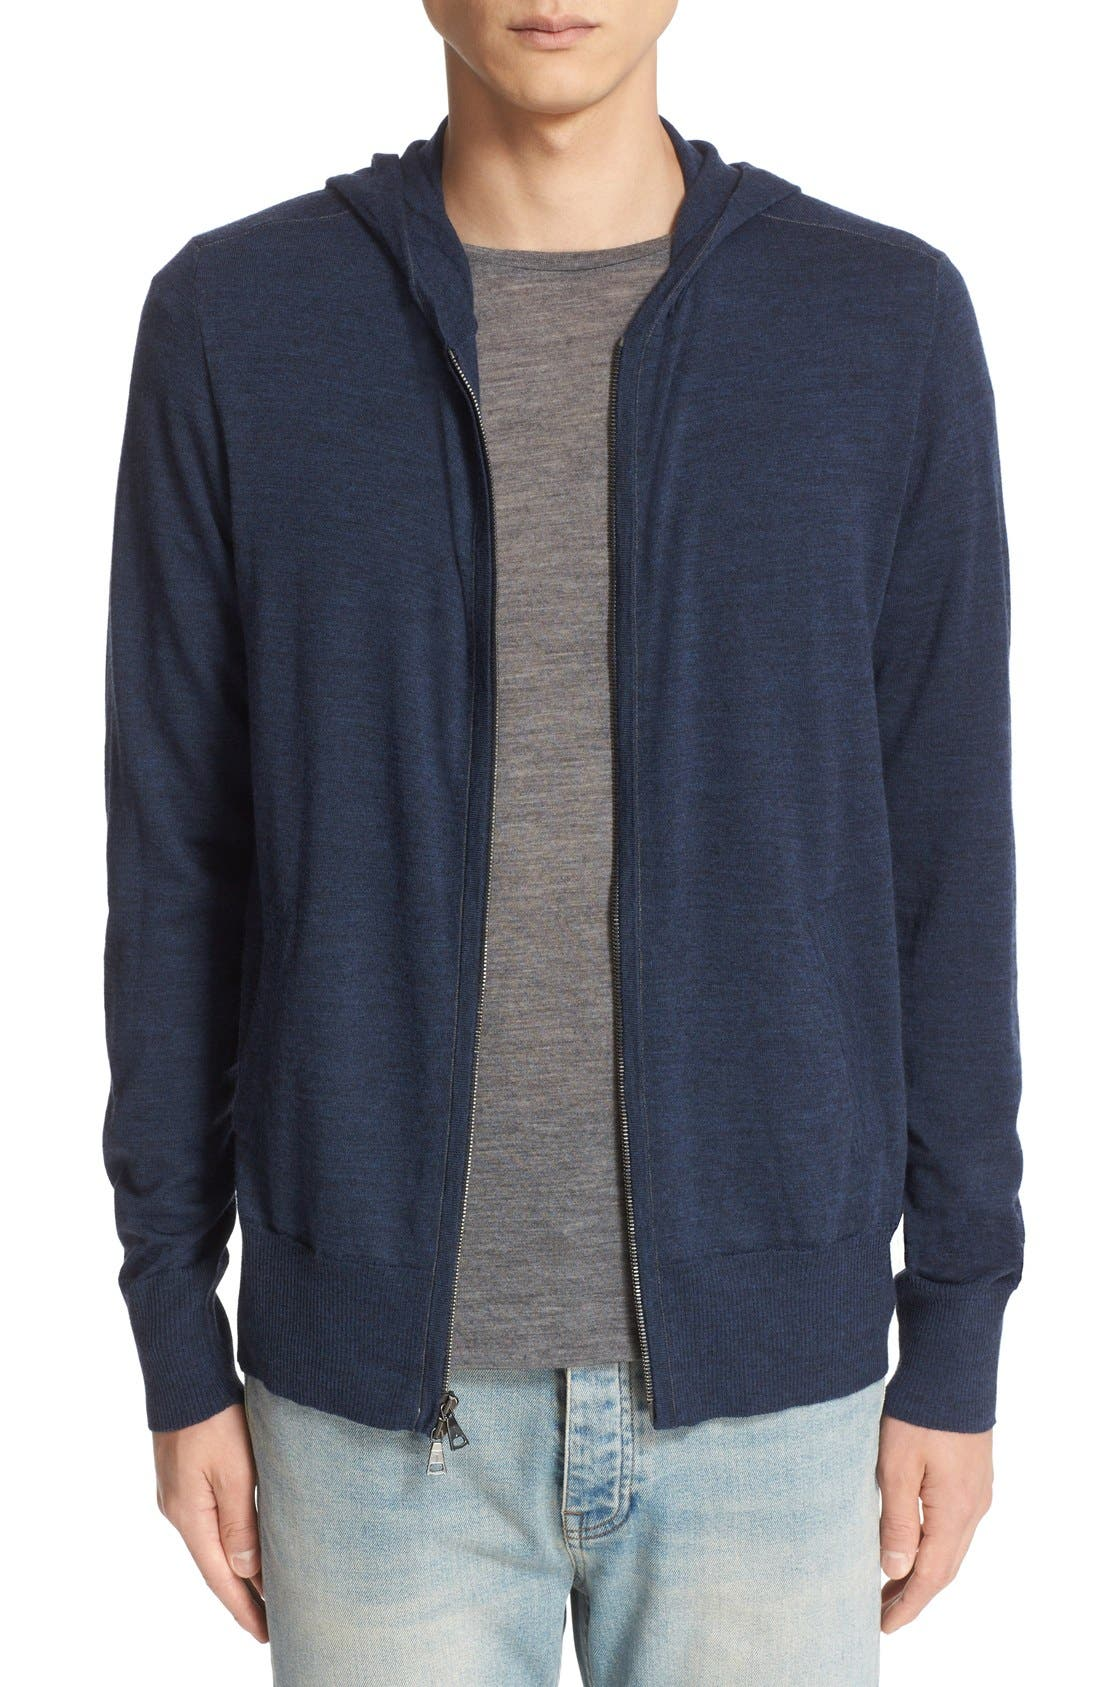 Alternate Image 1 Selected - John Varvatos Collection Merino Wool Zip Hoodie